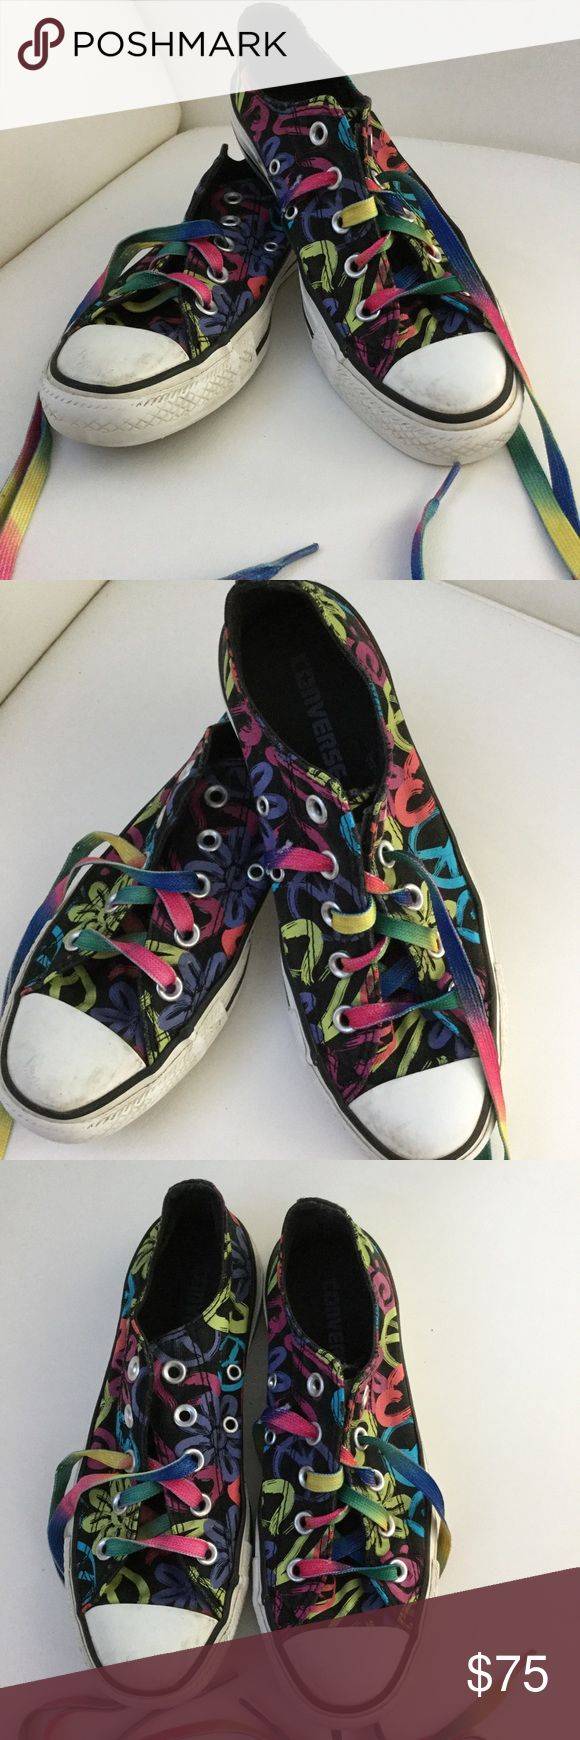 Converse Sneakers  🔵🔴🔵🔴🔵🔴🔵🔴🔵🔴🔵 Black with bright patterns. Heels intact. Converse Shoes Sneakers